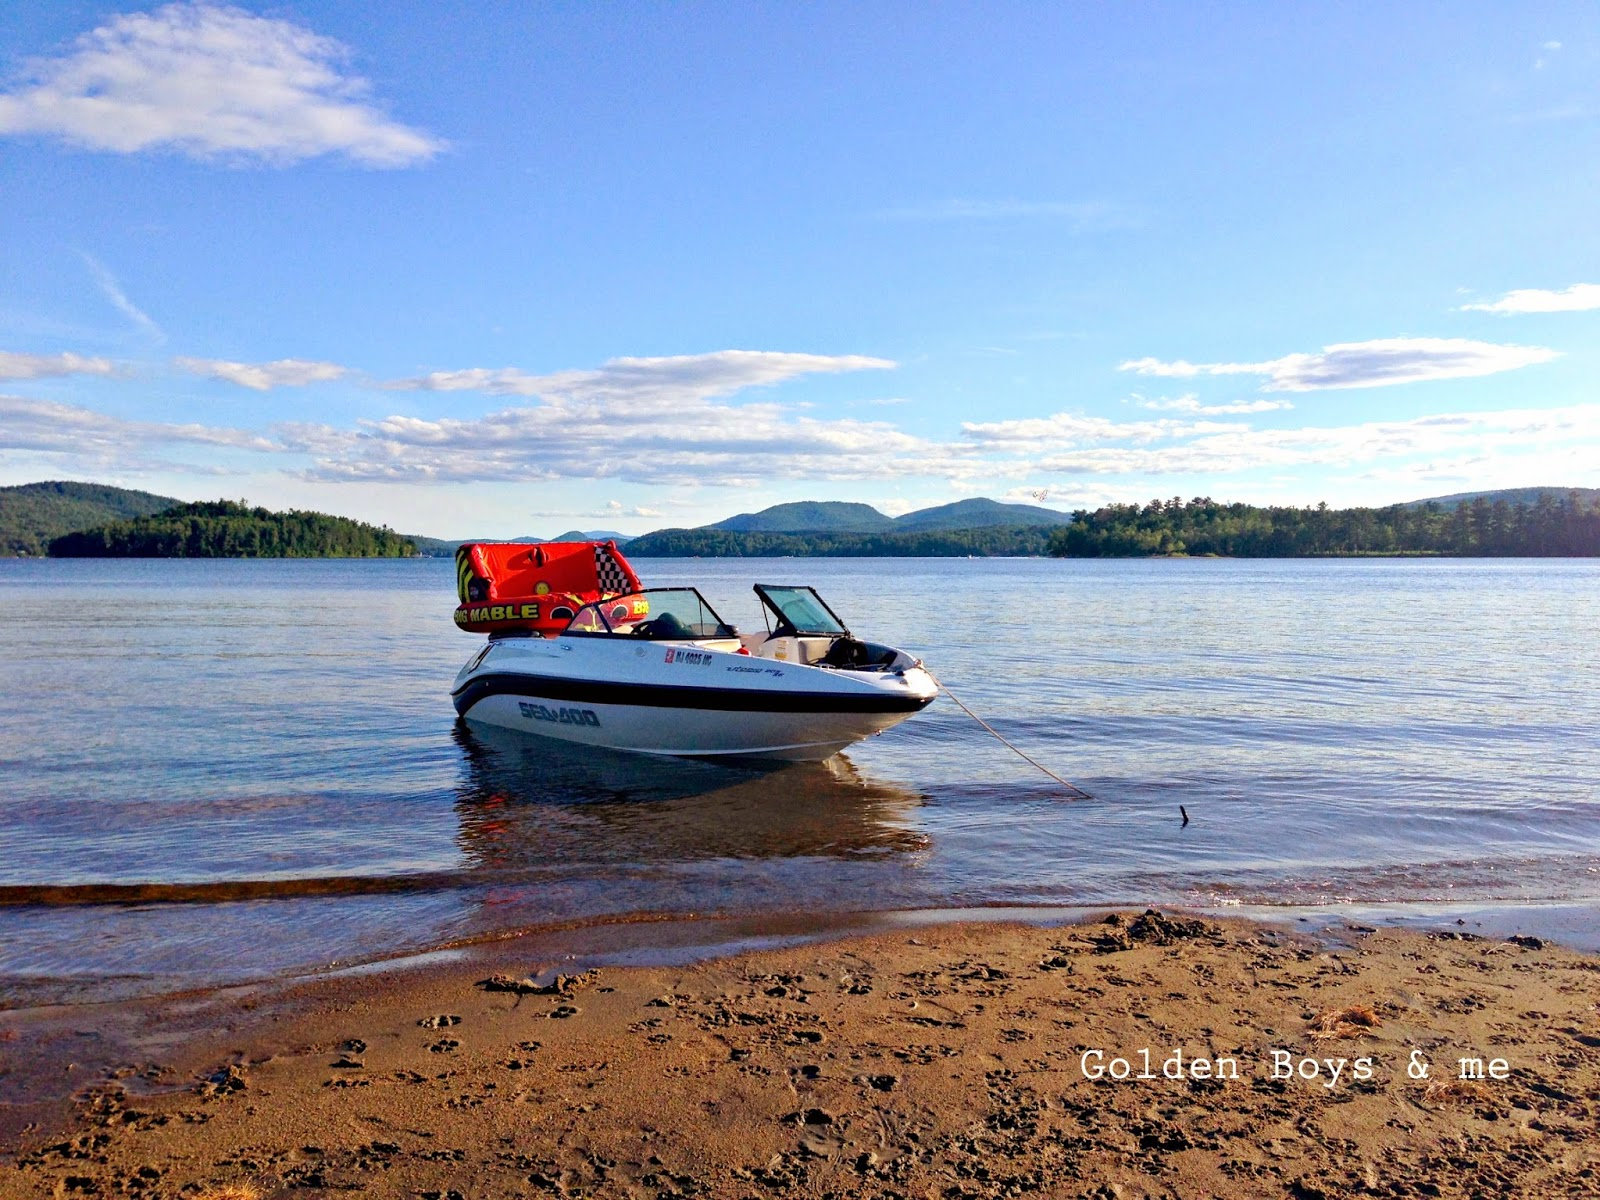 Sea Doo jet boat with Big Mable towable on Schroon Lake in NY-www.goldenboysandme.com